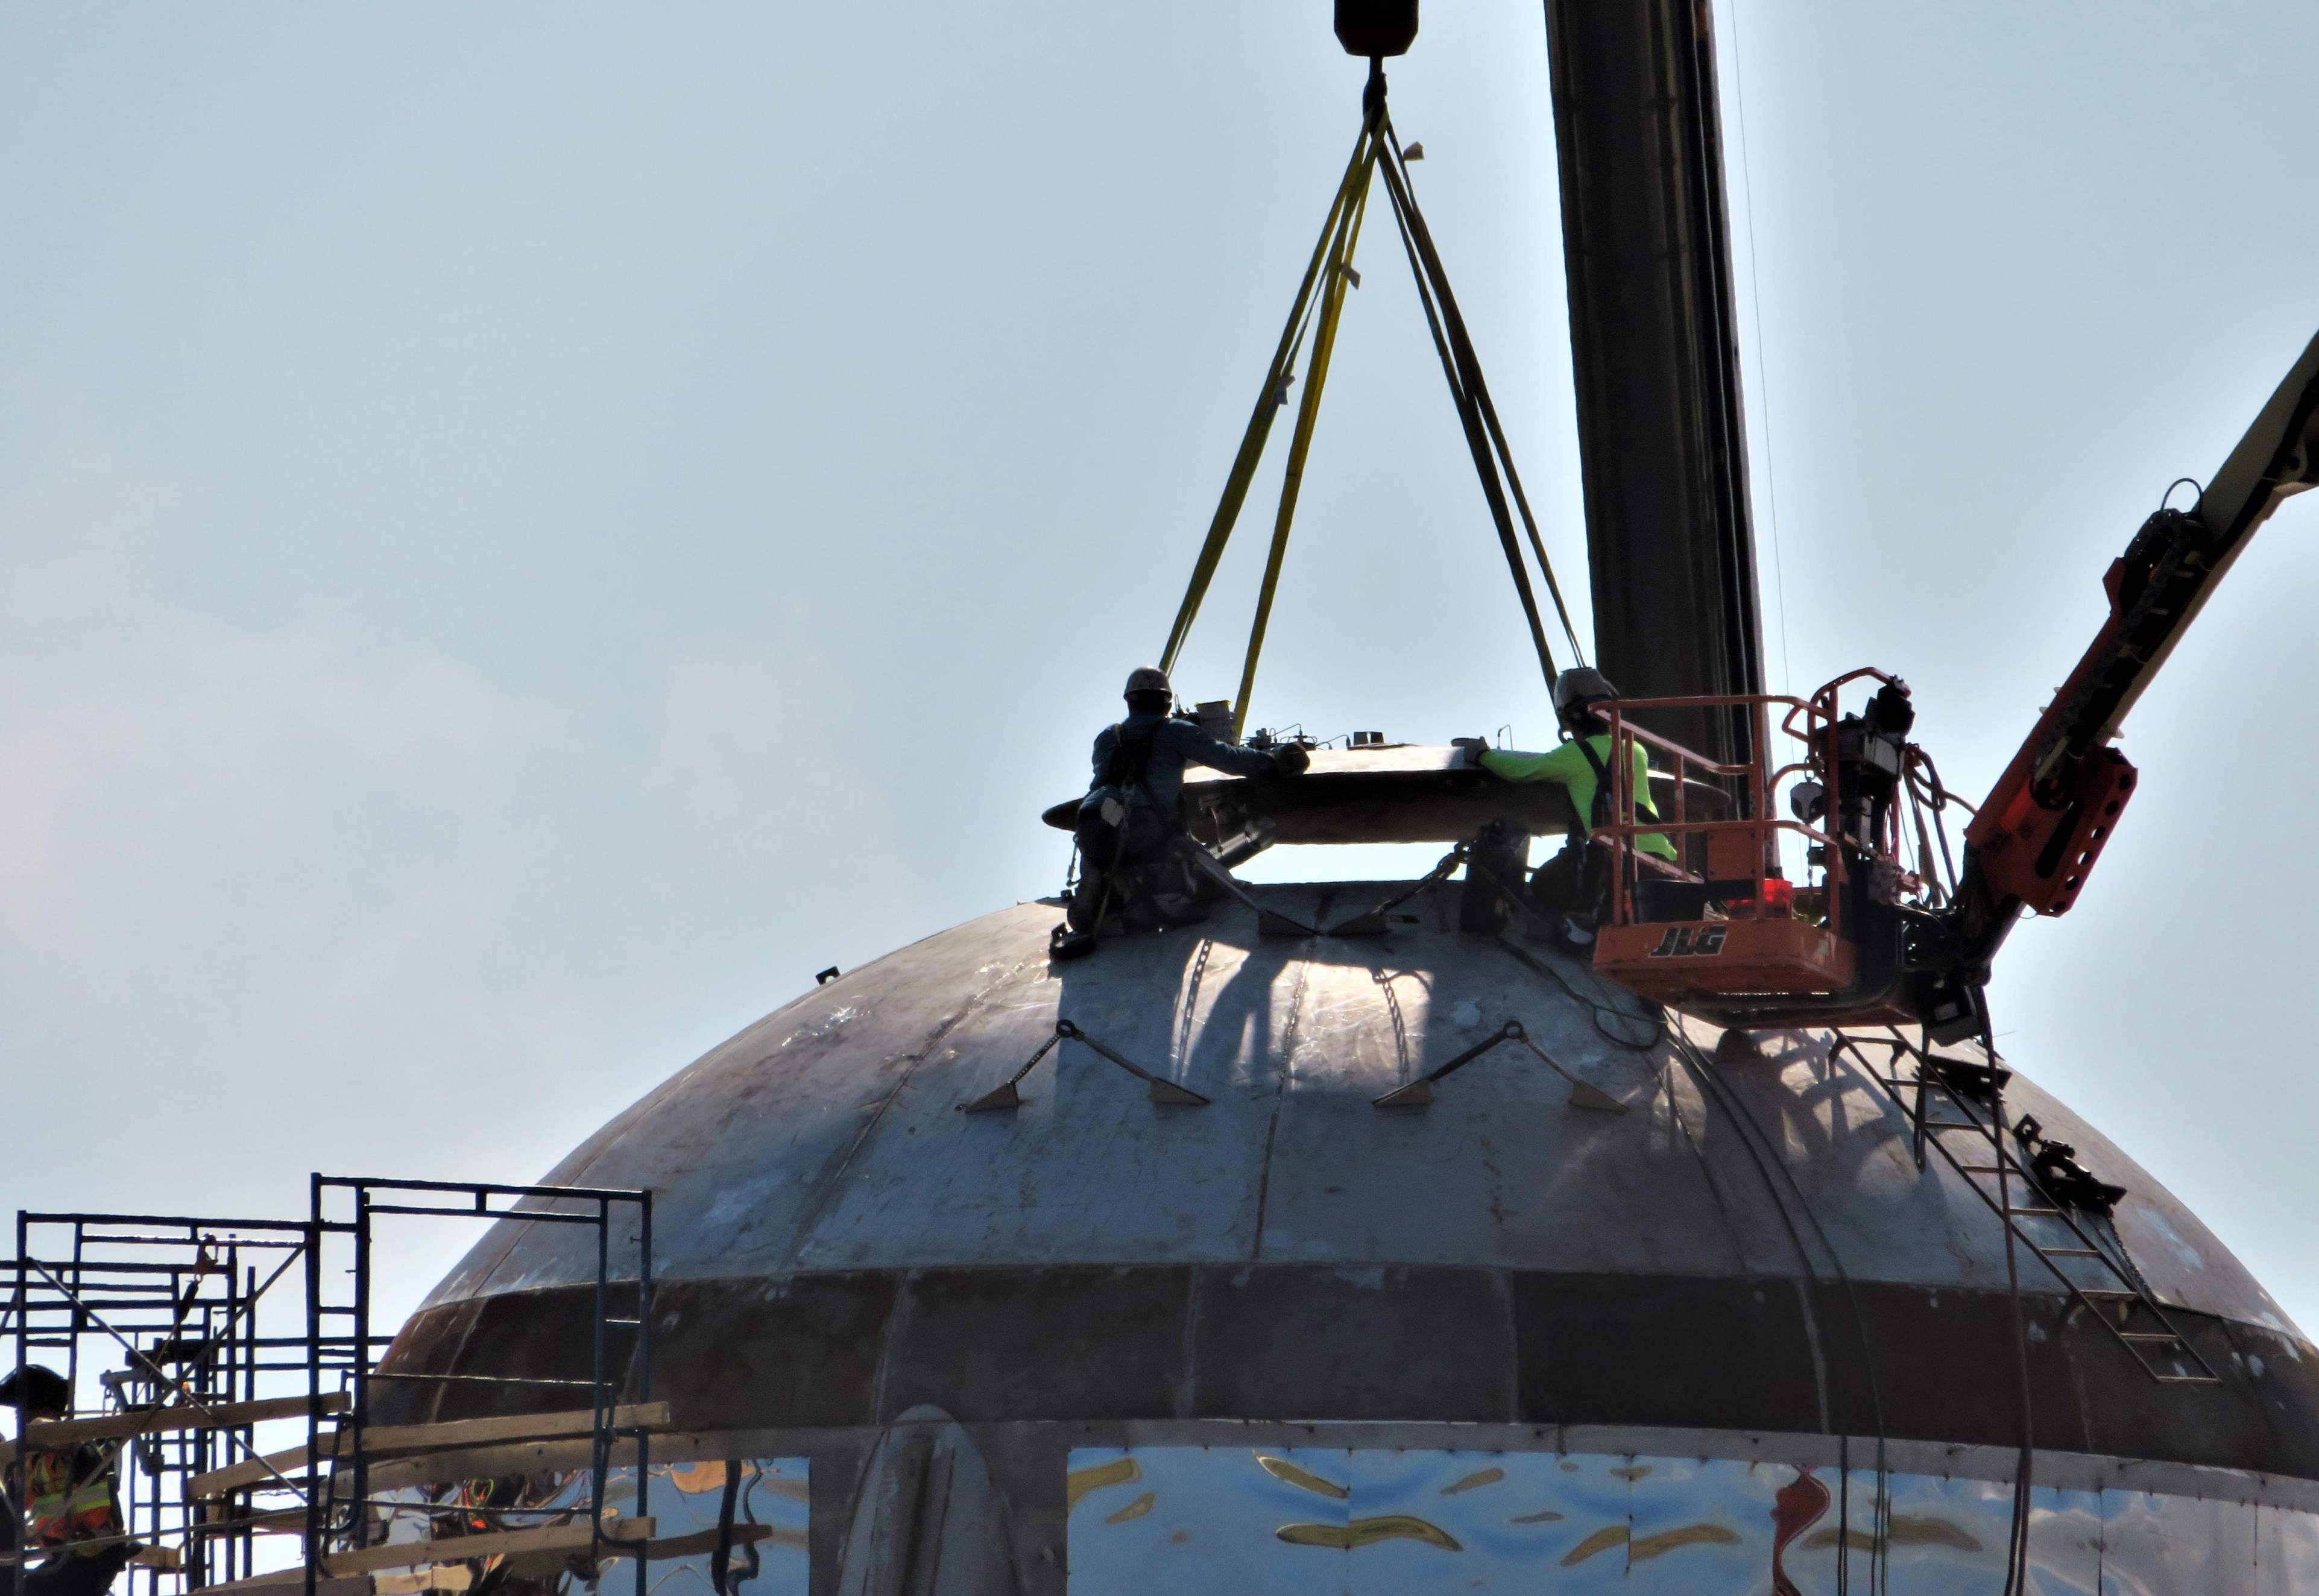 Boca Chica Starship dome cap install 020519 (NASASpaceflight – bocachicagal) 2 (c)